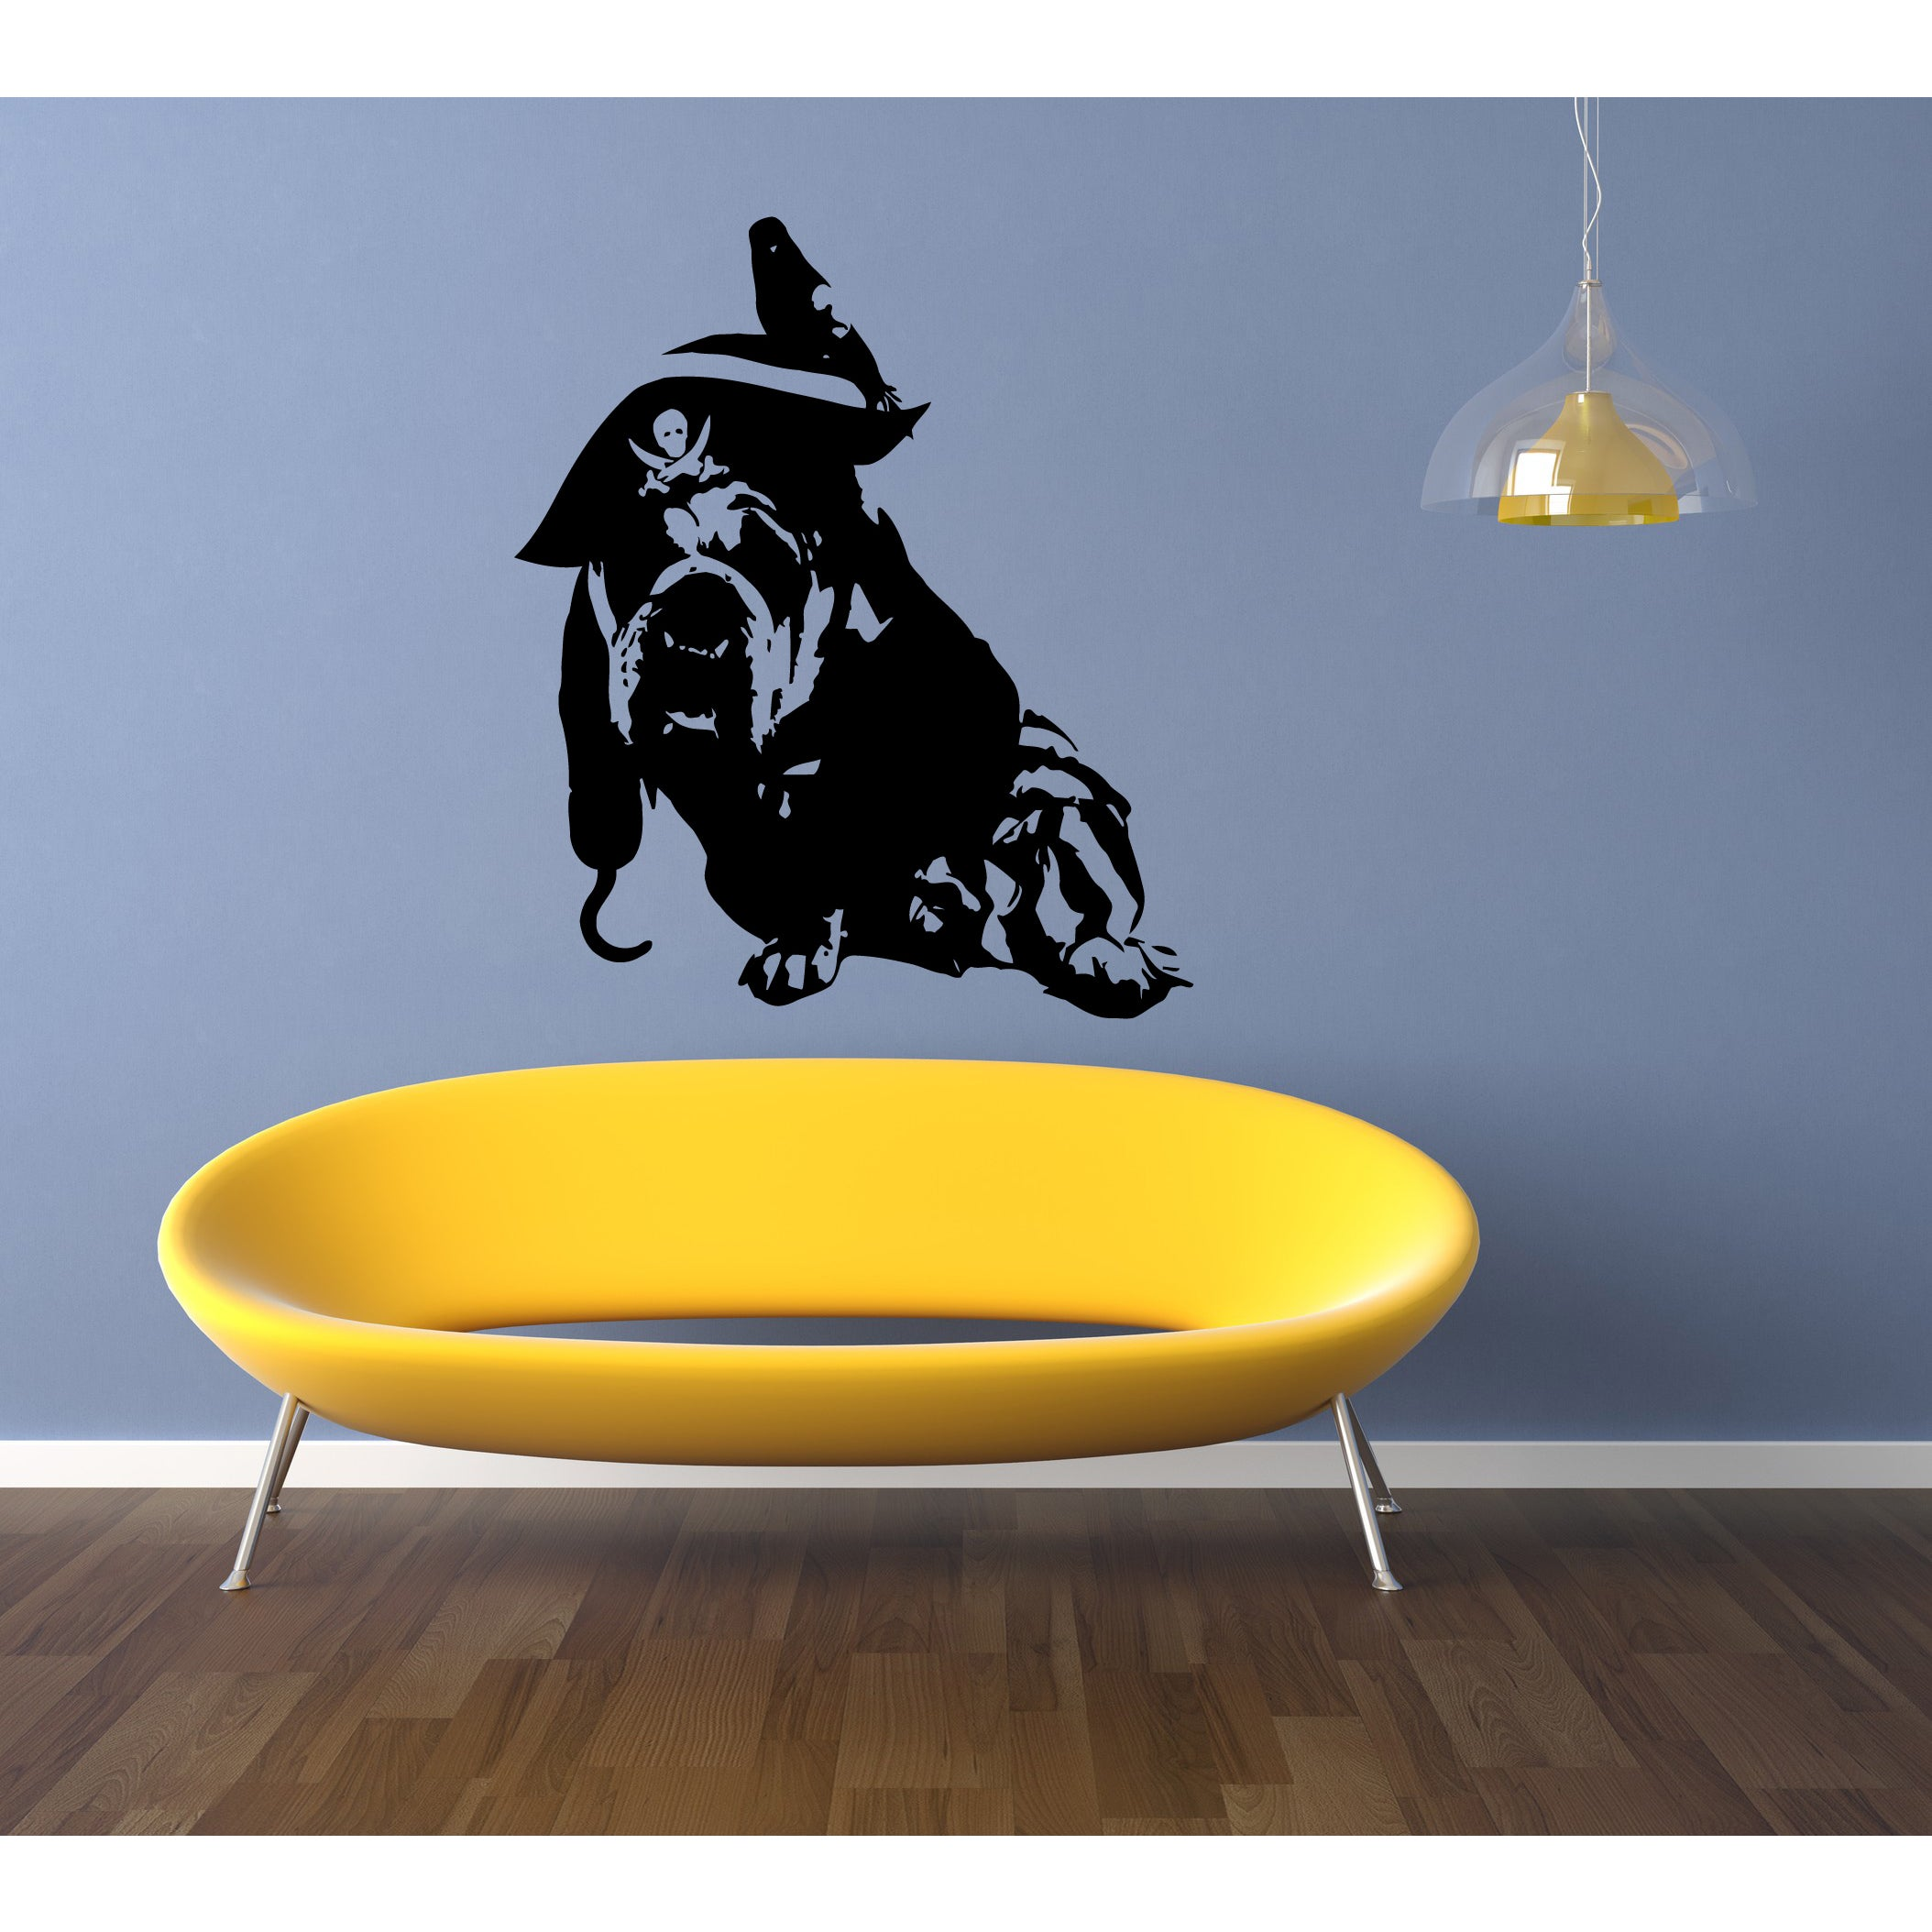 Attractive Pirate Ship Wall Decor Motif - Wall Art Collections ...